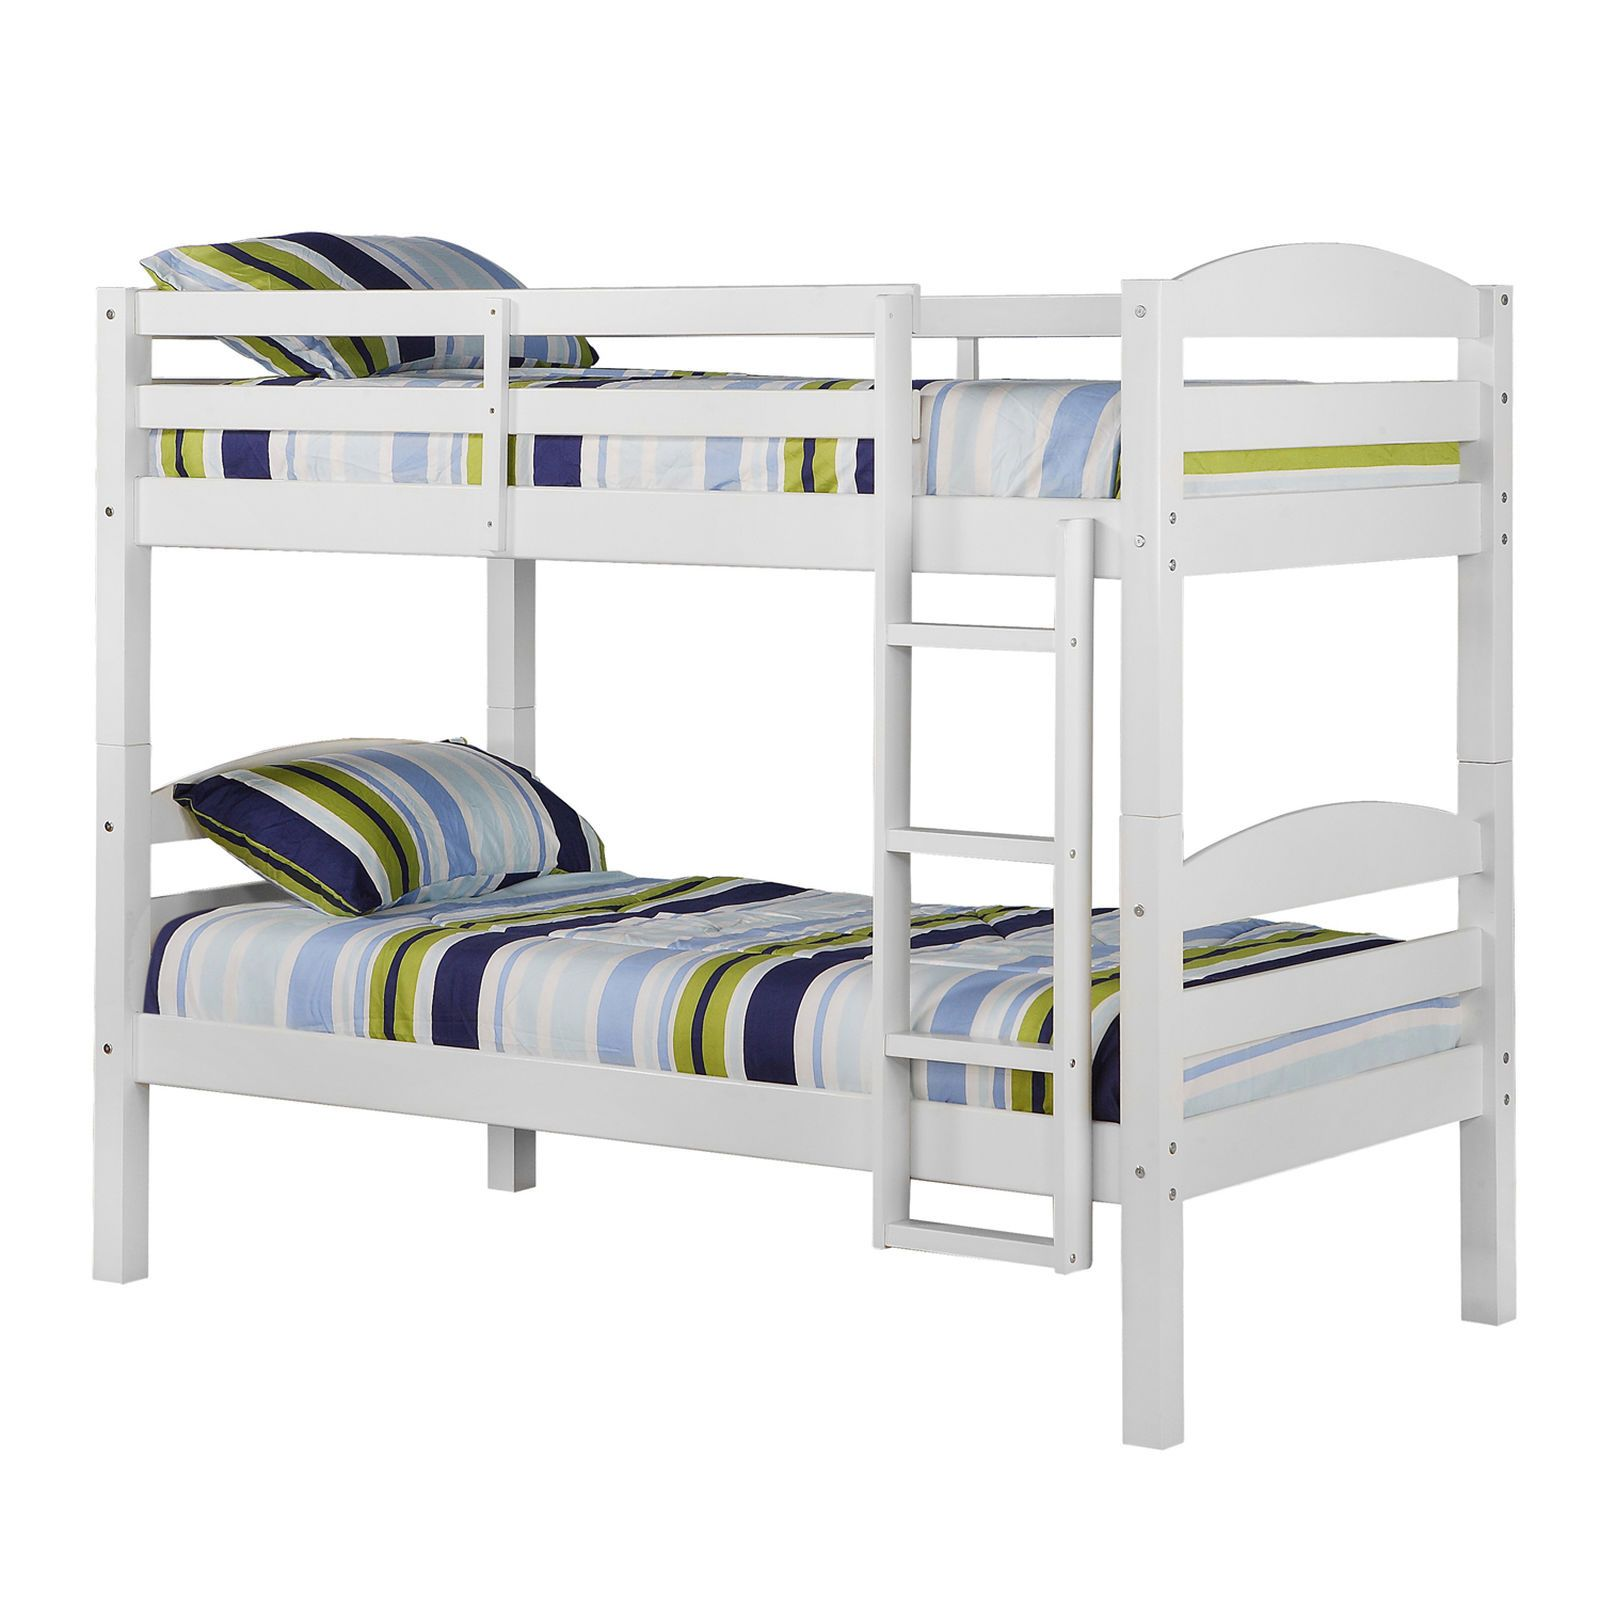 Pin Oleh Neby Di Bedroom Inspiration And Ideas Wood Bunk Beds